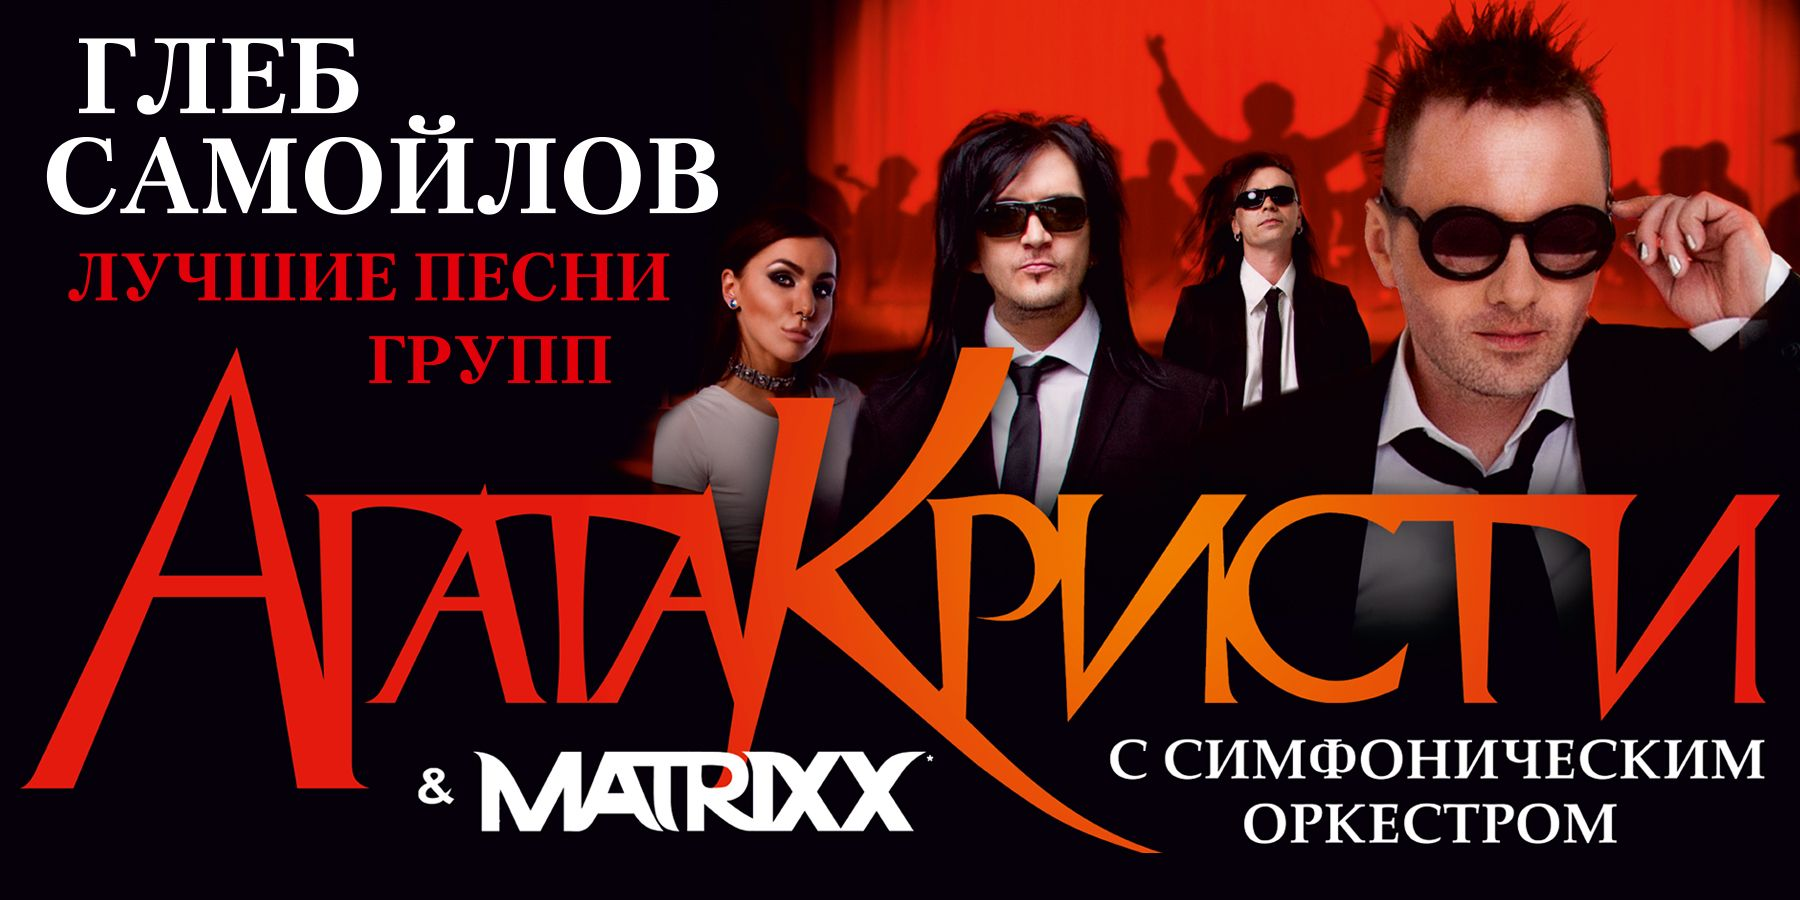 Концерт: Лучшие песни «АГАТА КРИСТИ» & THE MATRIXX с симфоническим оркестром